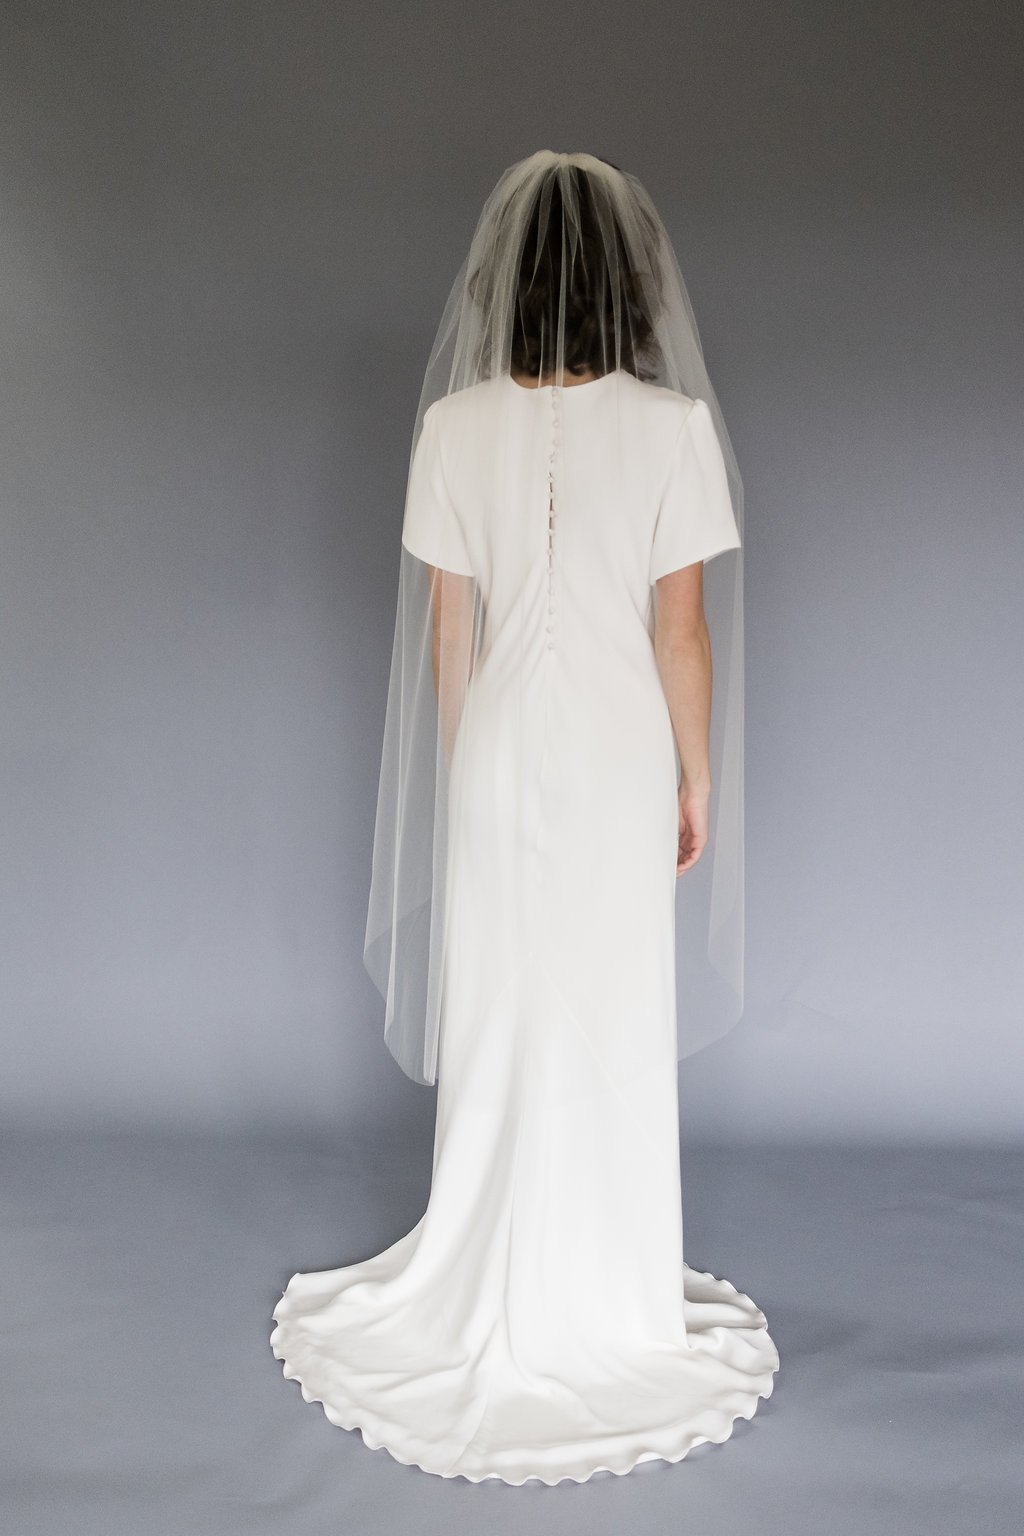 Waltz Length Wedding Veil by Melinda Rose Design